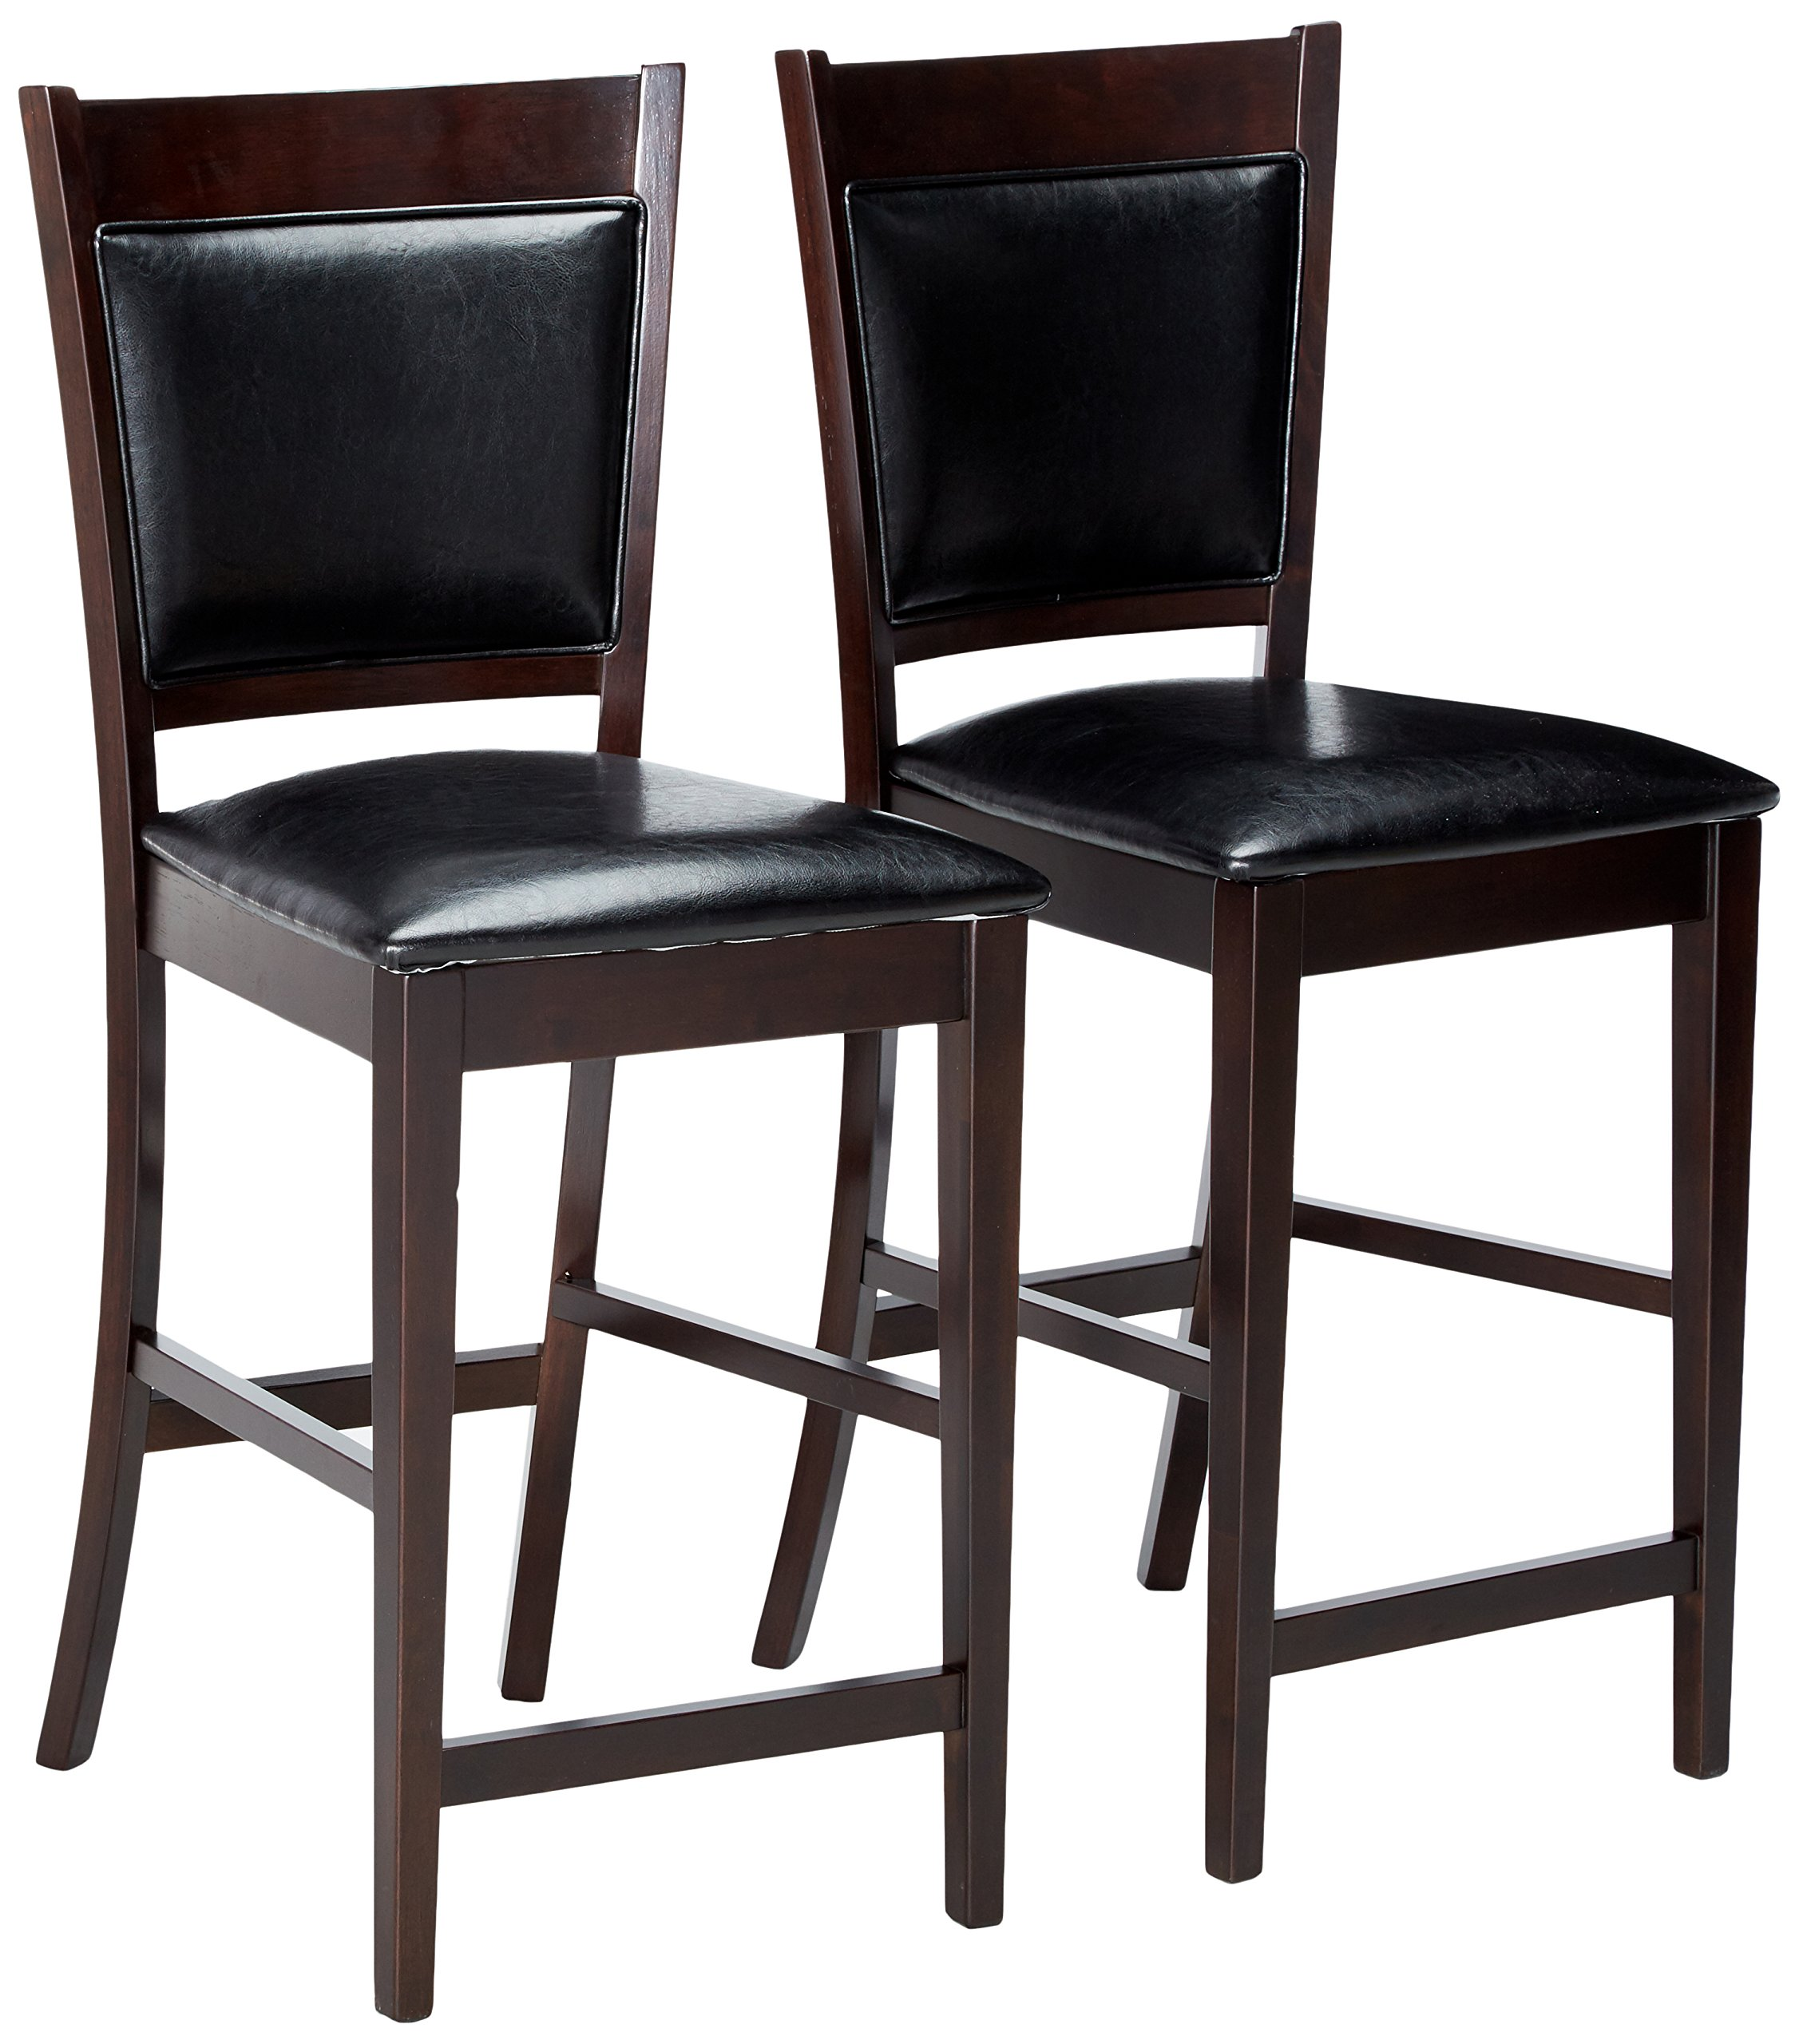 Jaden Vinyl Counter Stools Black and Espresso (Set of 2) by Coaster Home Furnishings